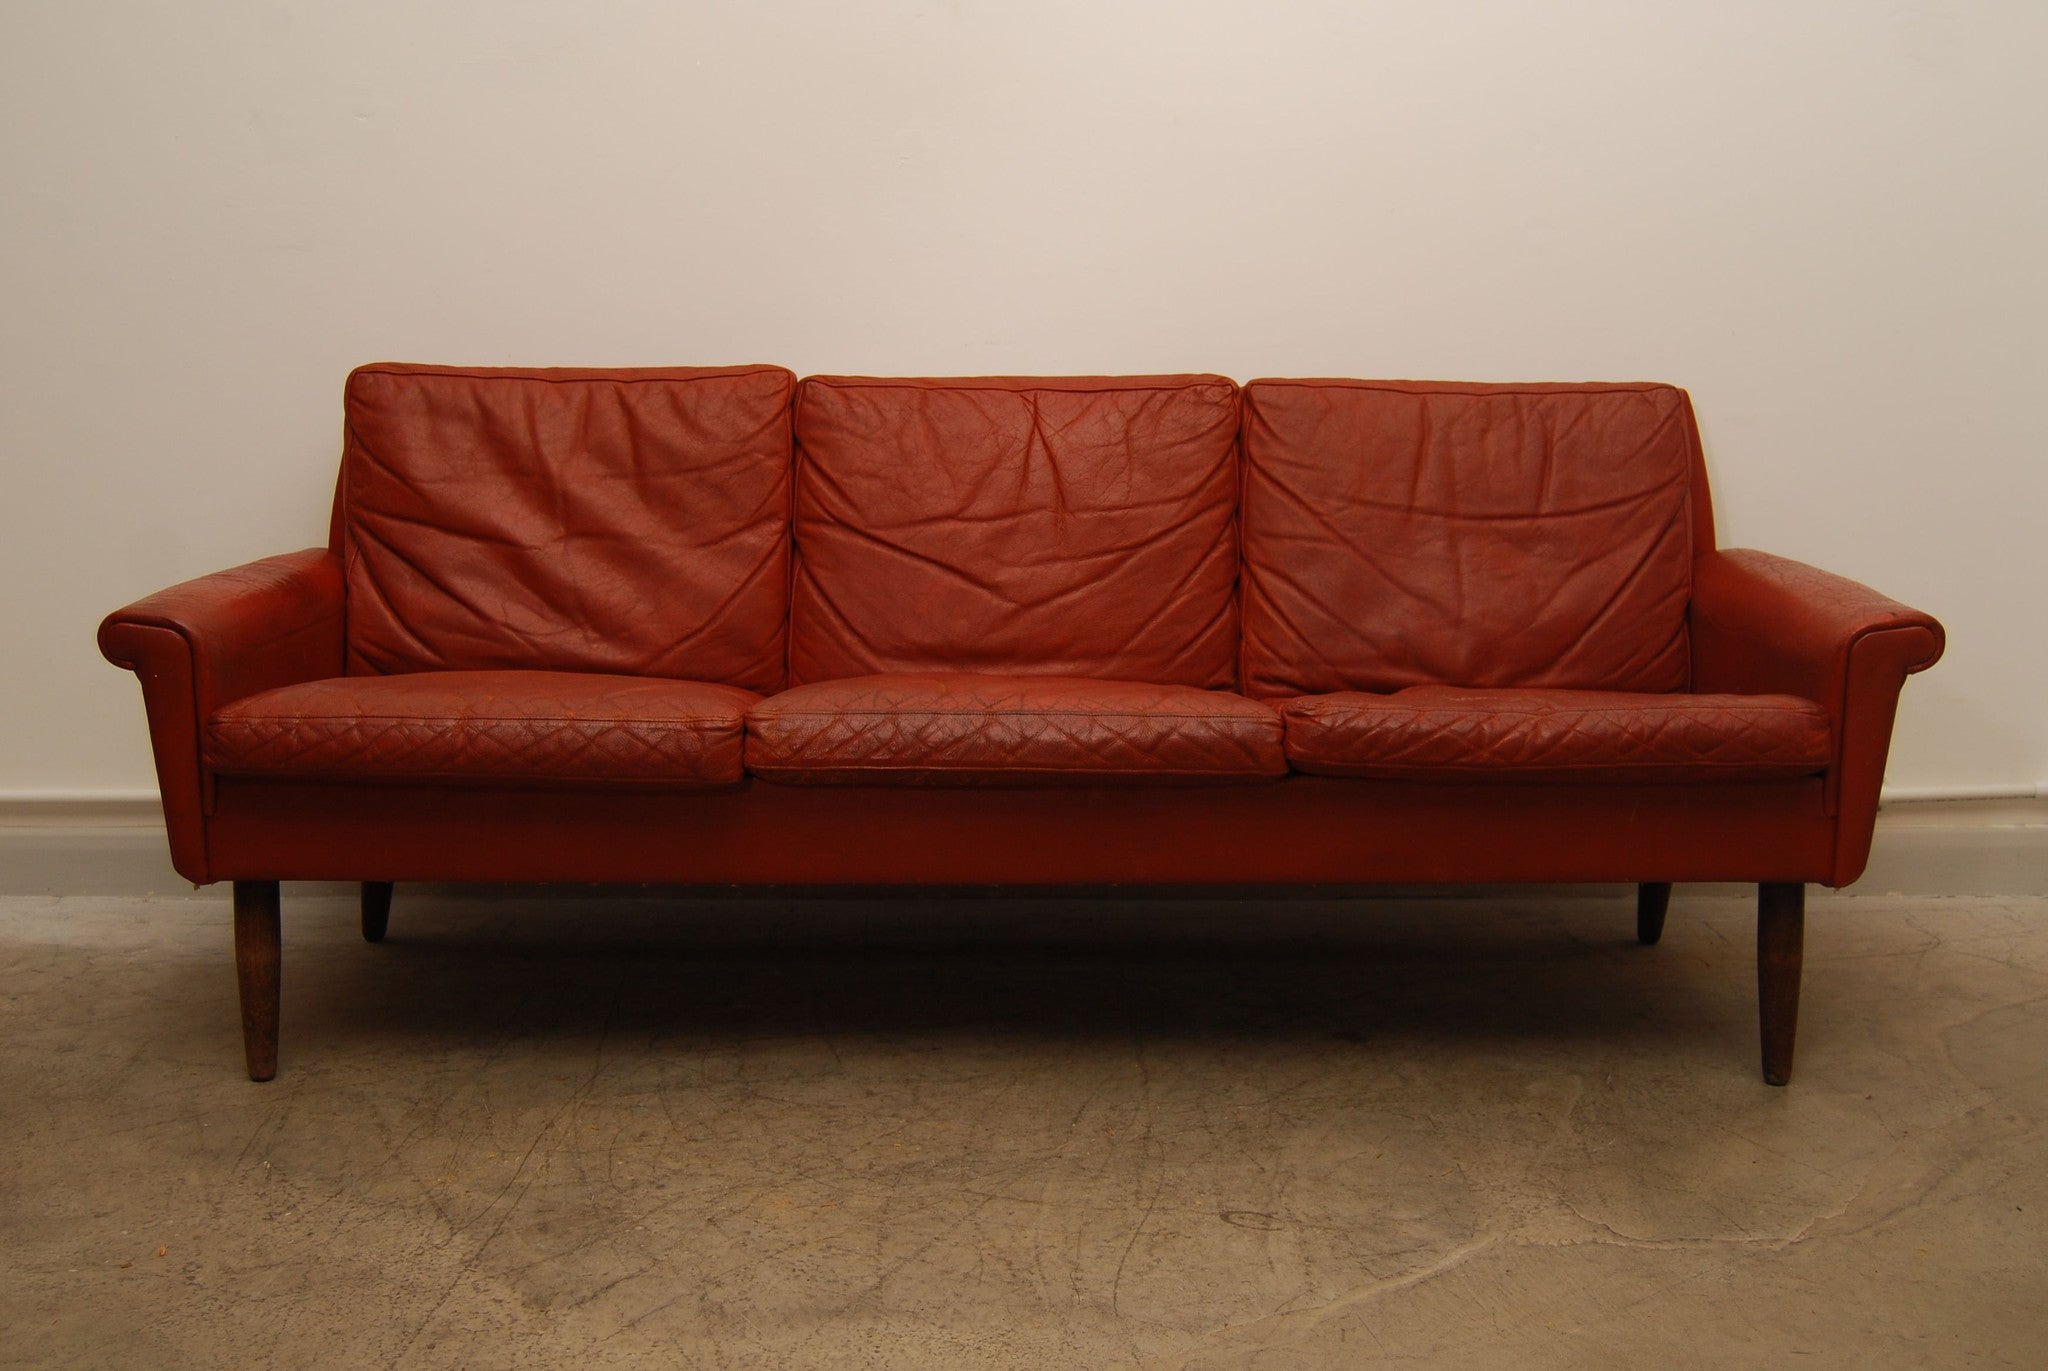 Chase & Sorensen Red leather three seater